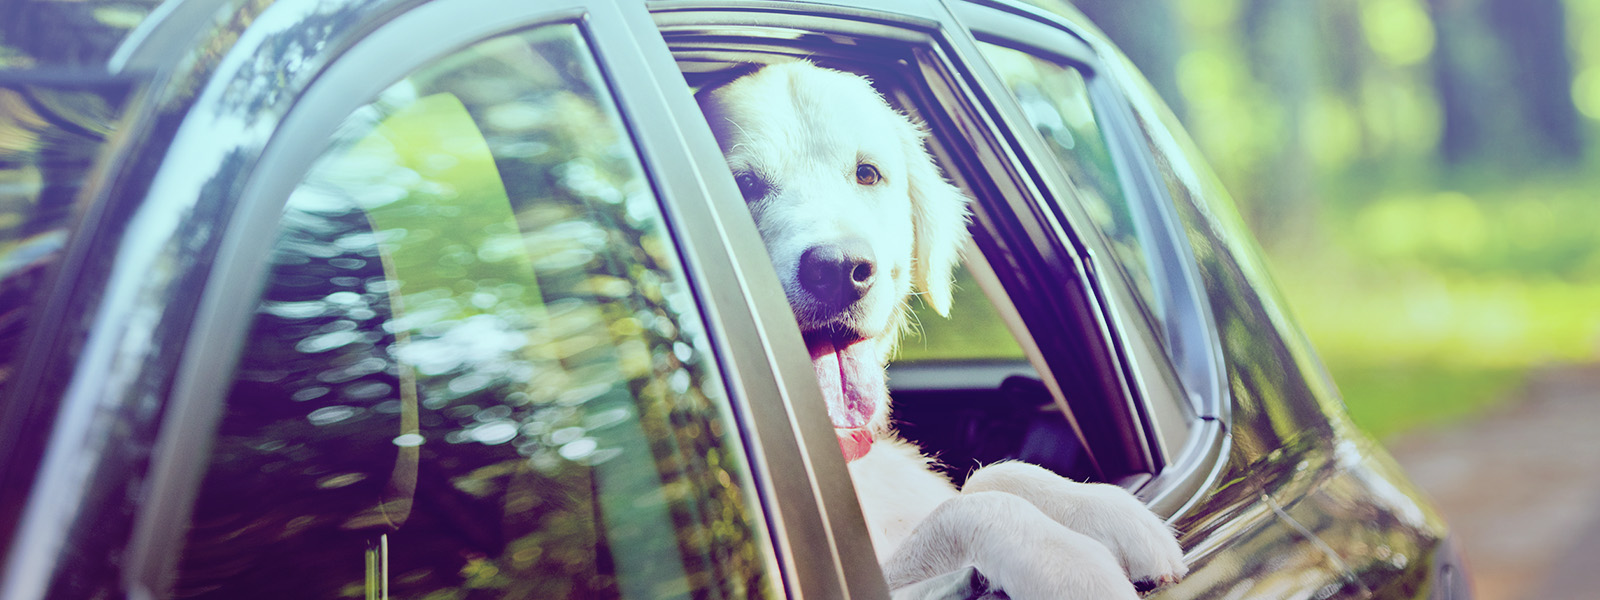 Como transportar adequadamente seu pet no carro